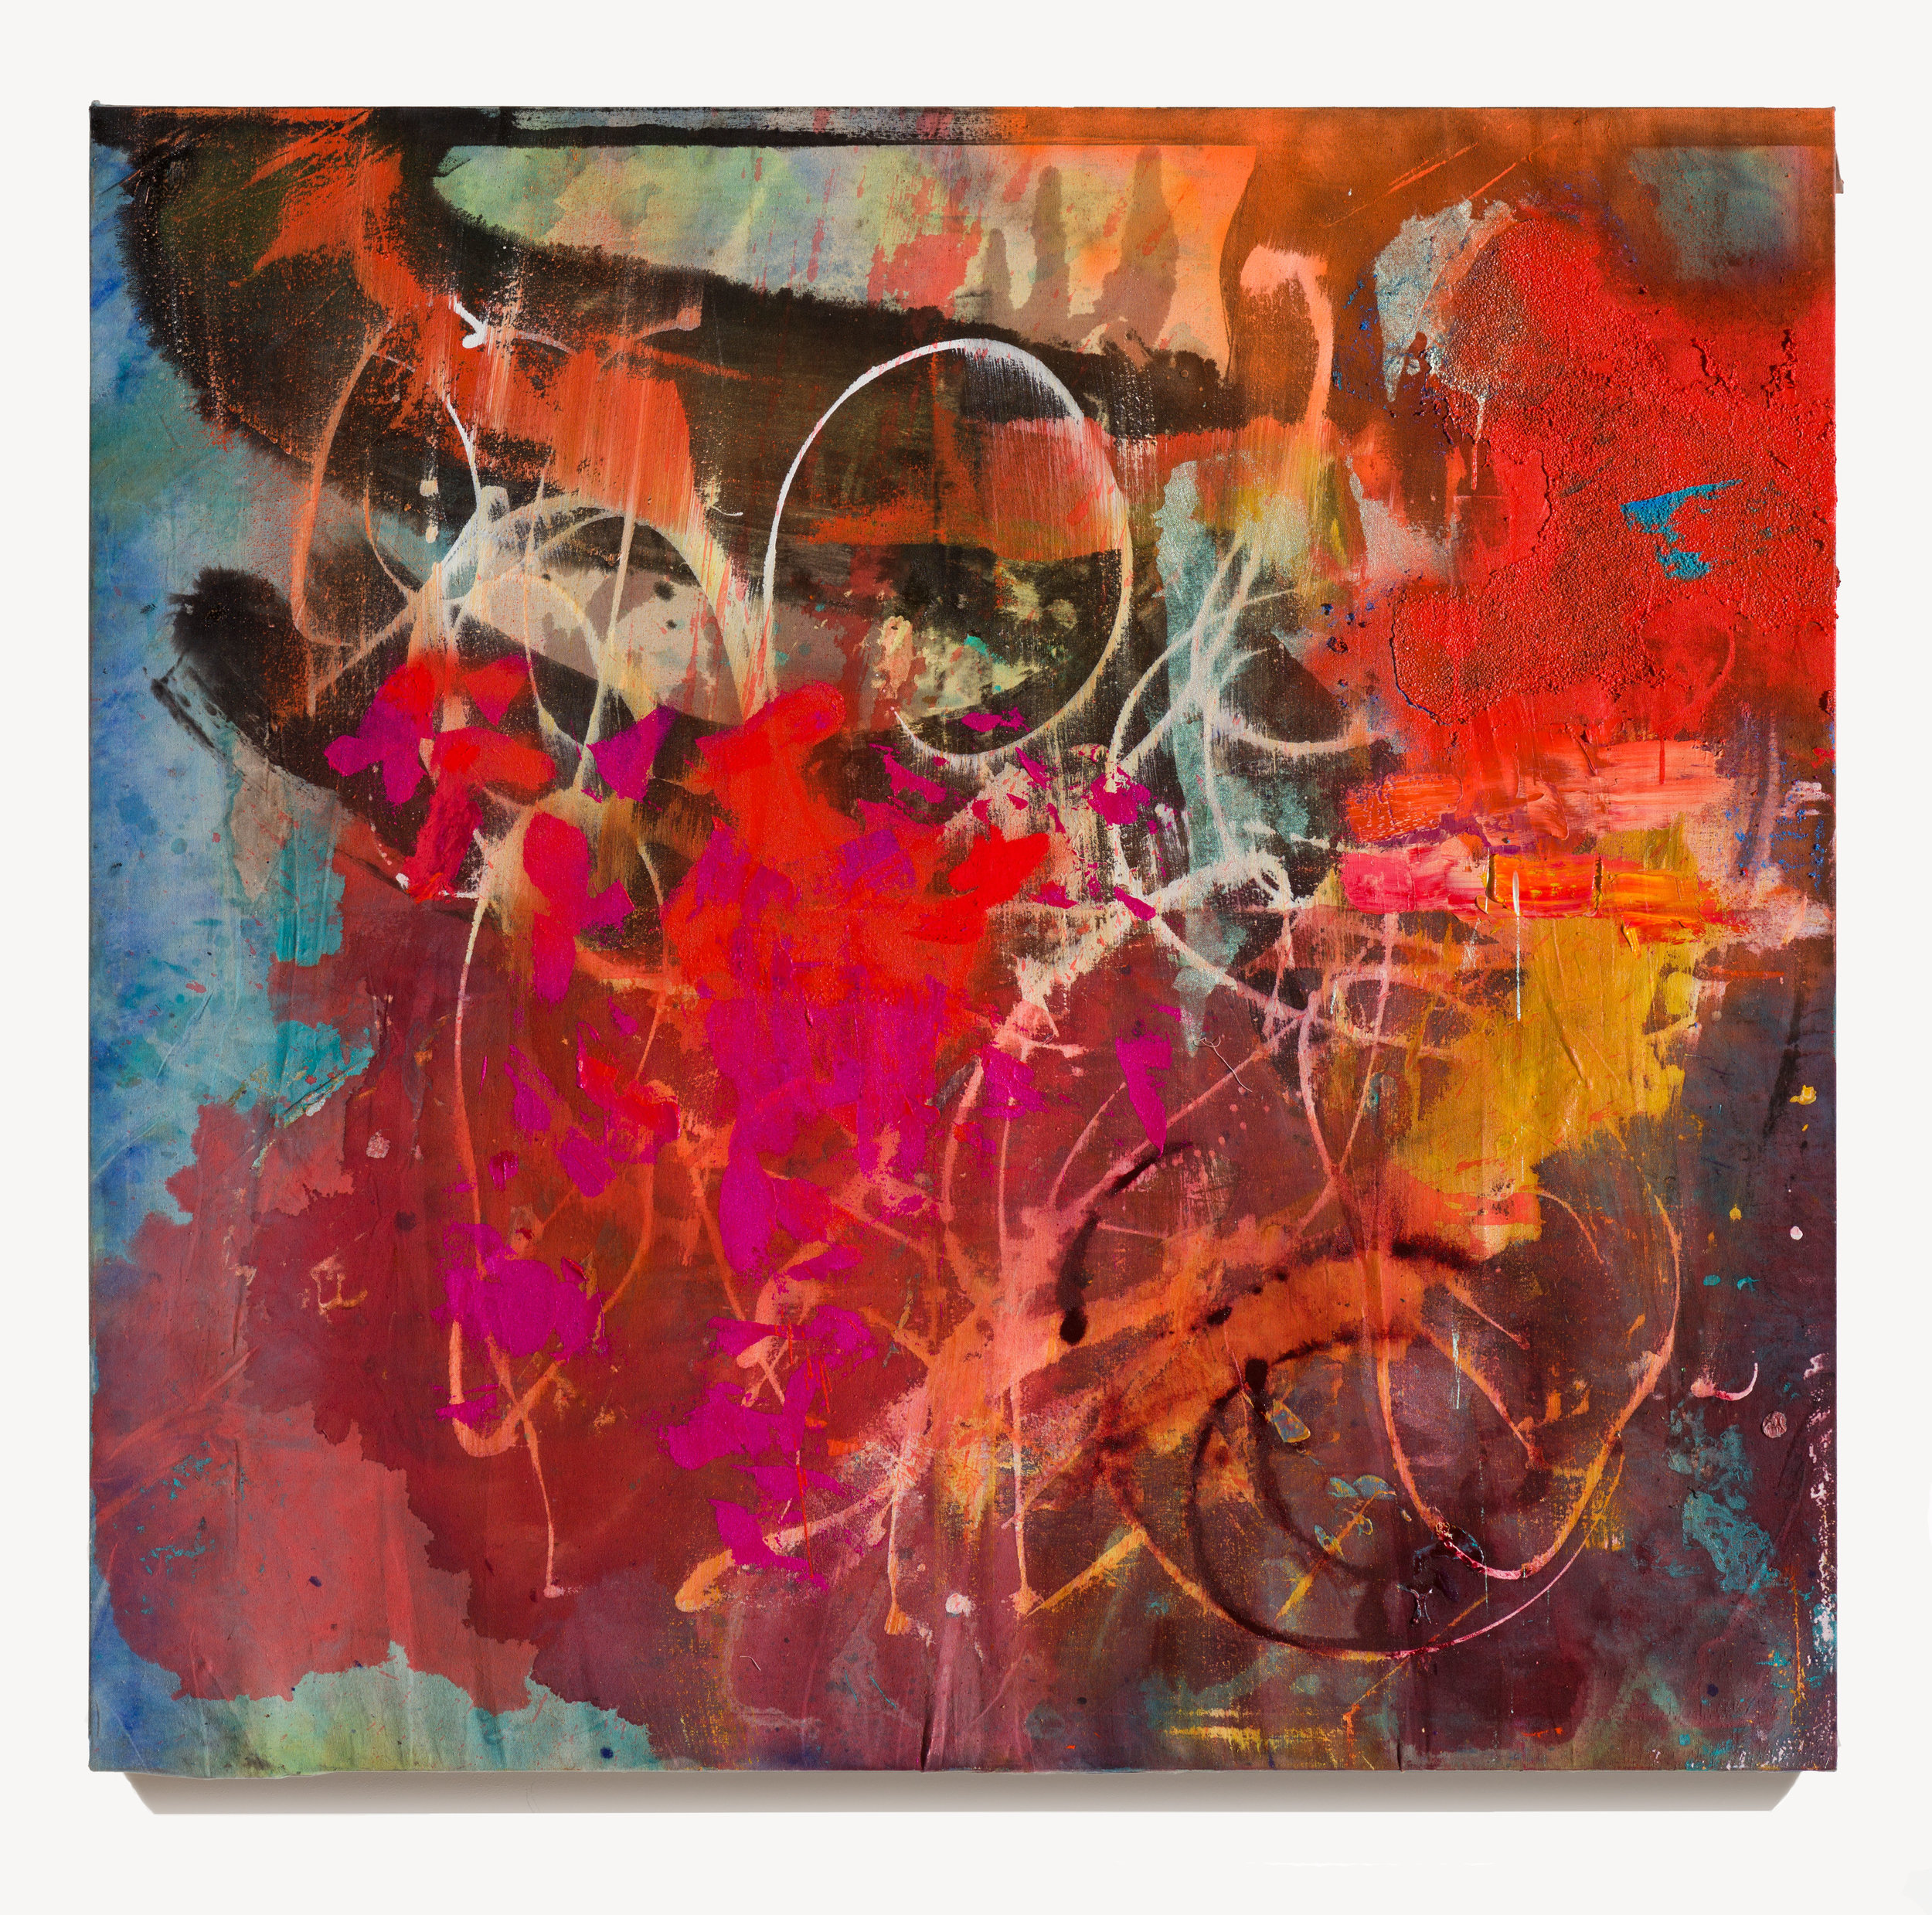 Alexander Kroll, Knotted, 2016 oil, acrylic and oil pastel on canvas drop cloth (with red wine stain) 152,5 x 160 cm - 60 x 63 inches